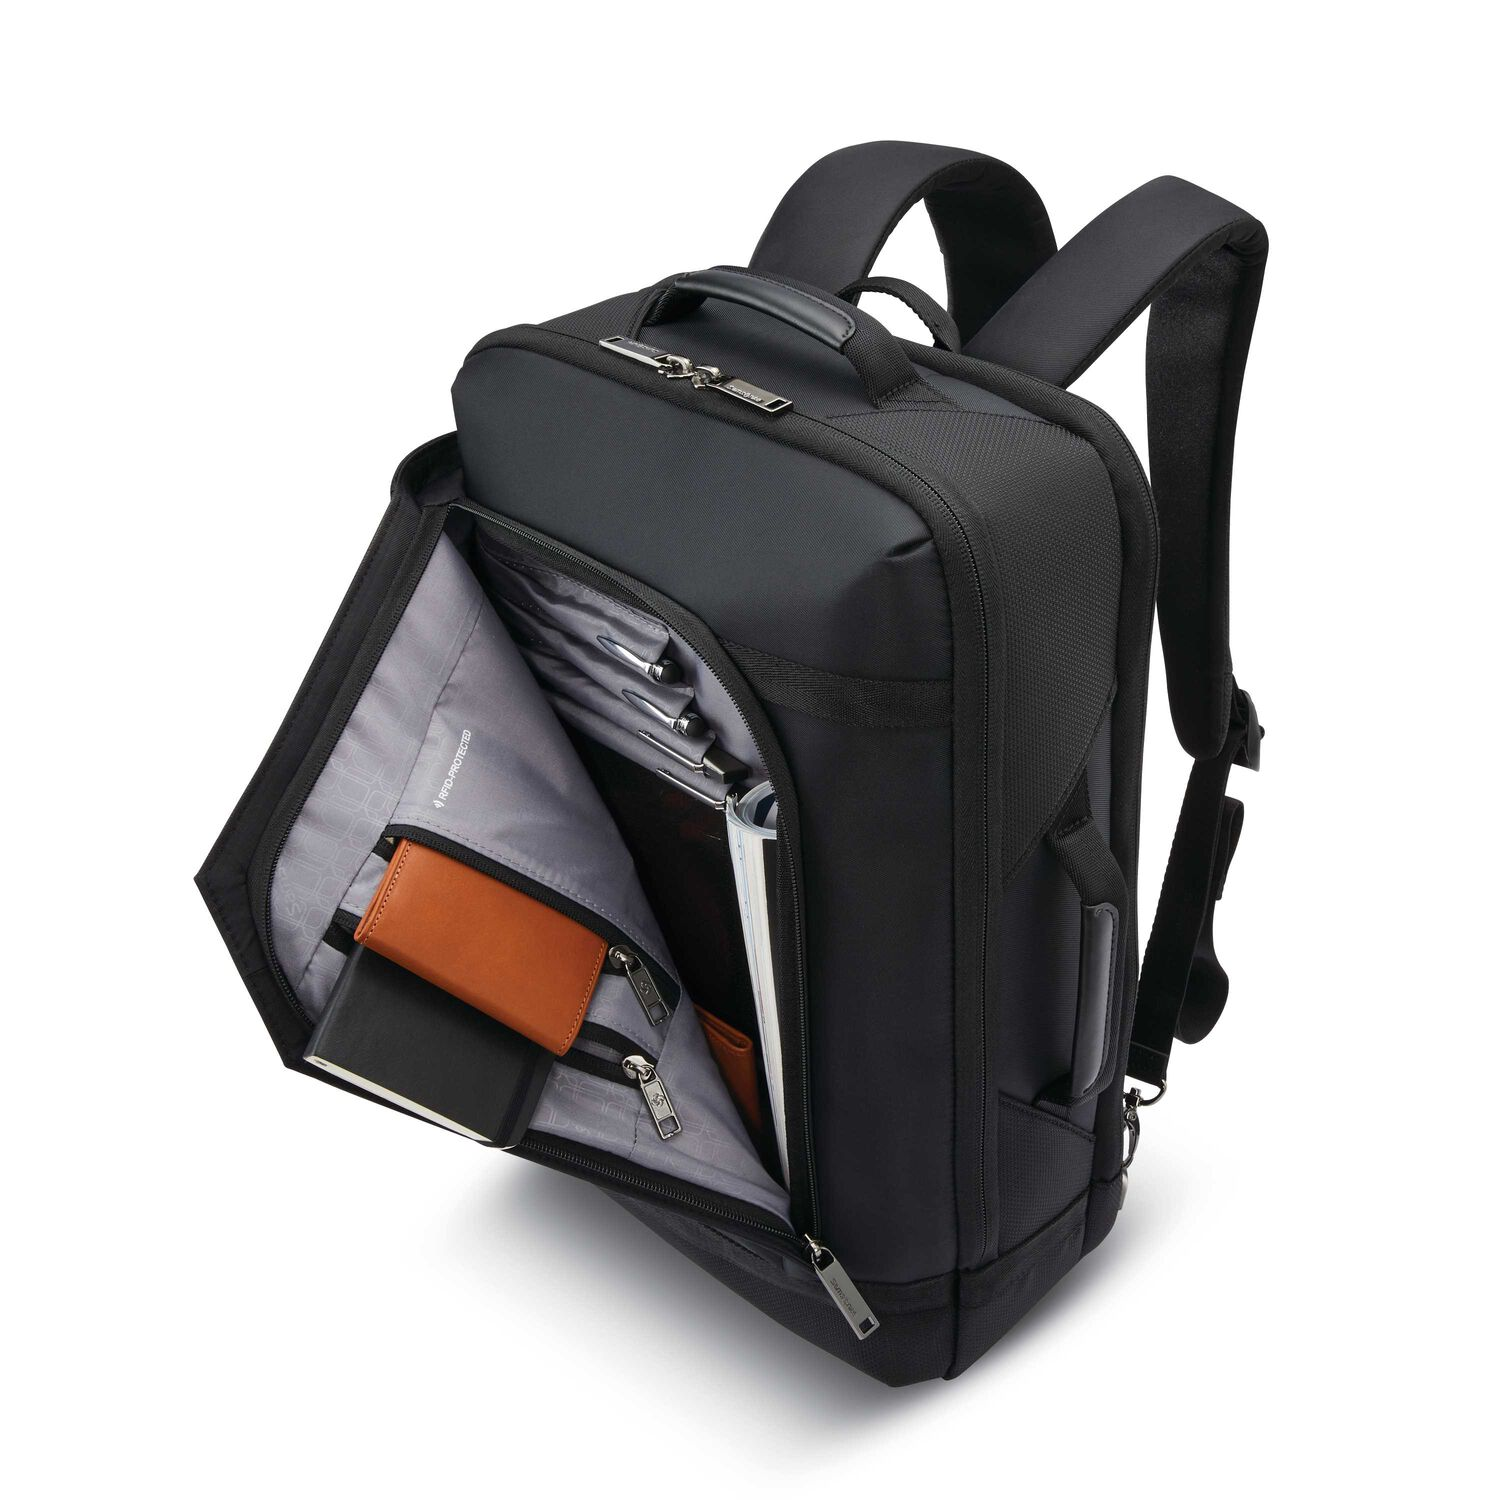 267aed6a707 Samsonite Encompass Convertible Backpack in the color Black.